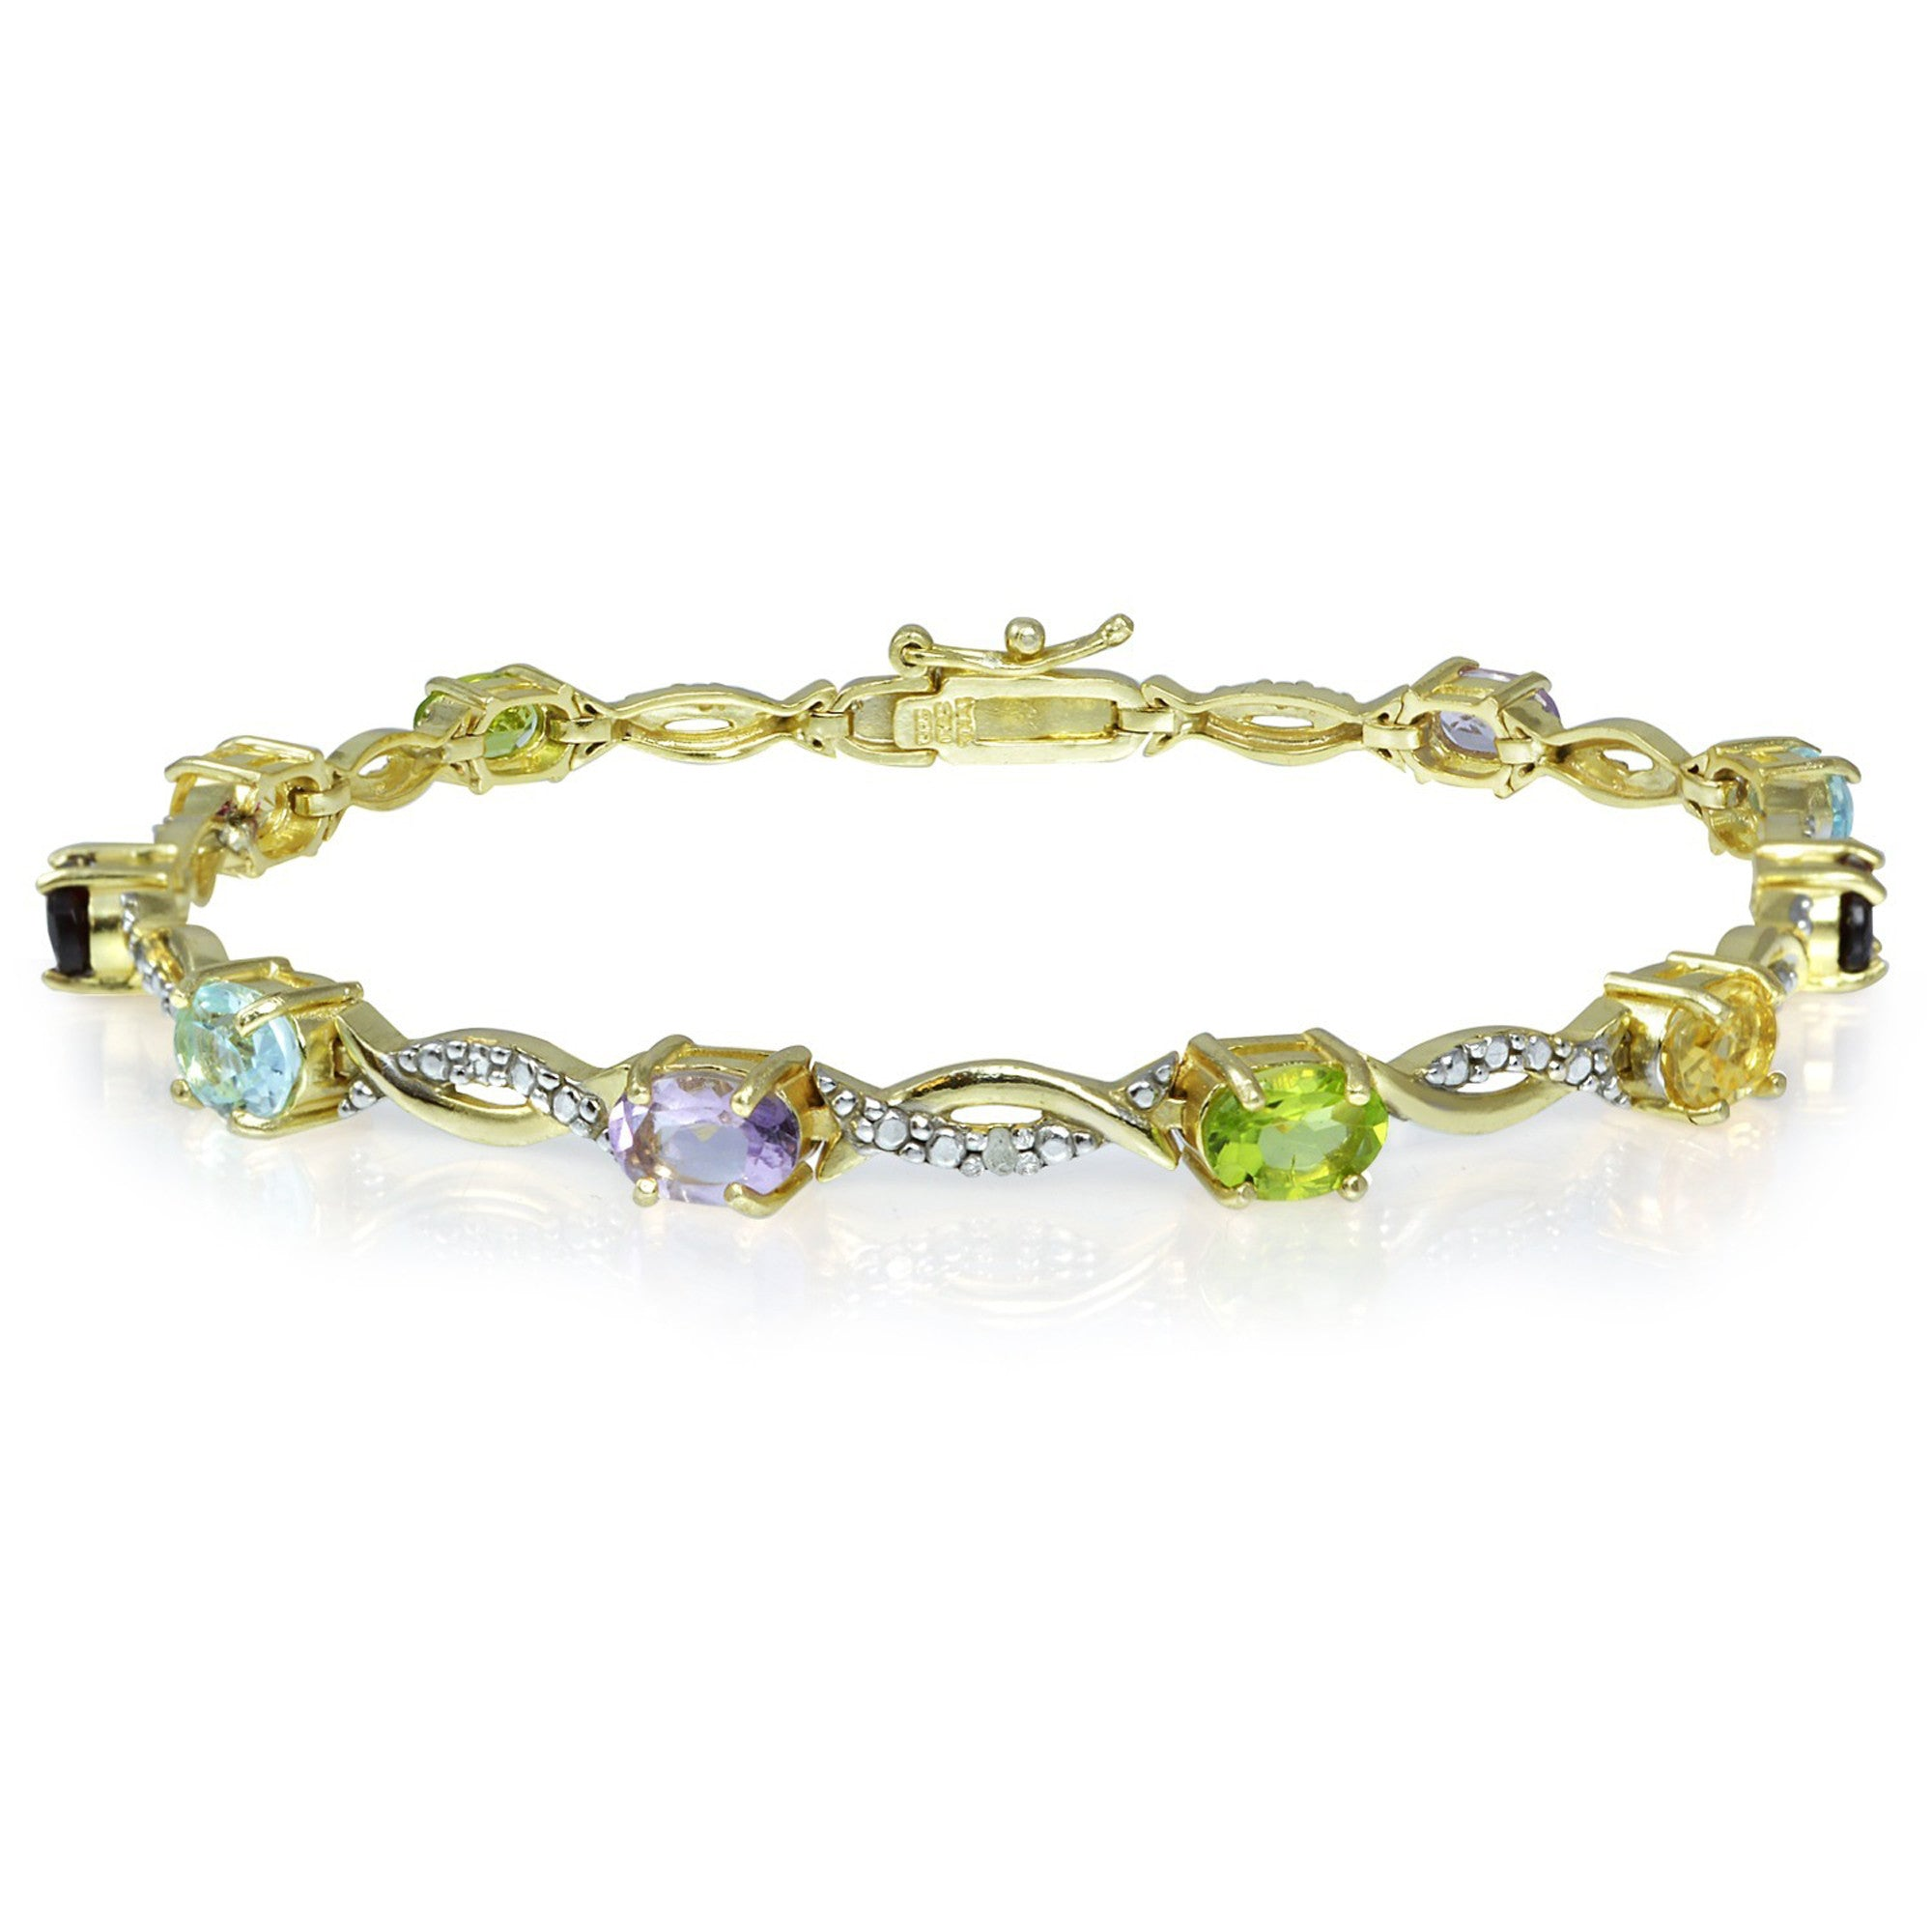 18k Gold Over Sterling Silver Bracelet With Diamond & Gem Accents